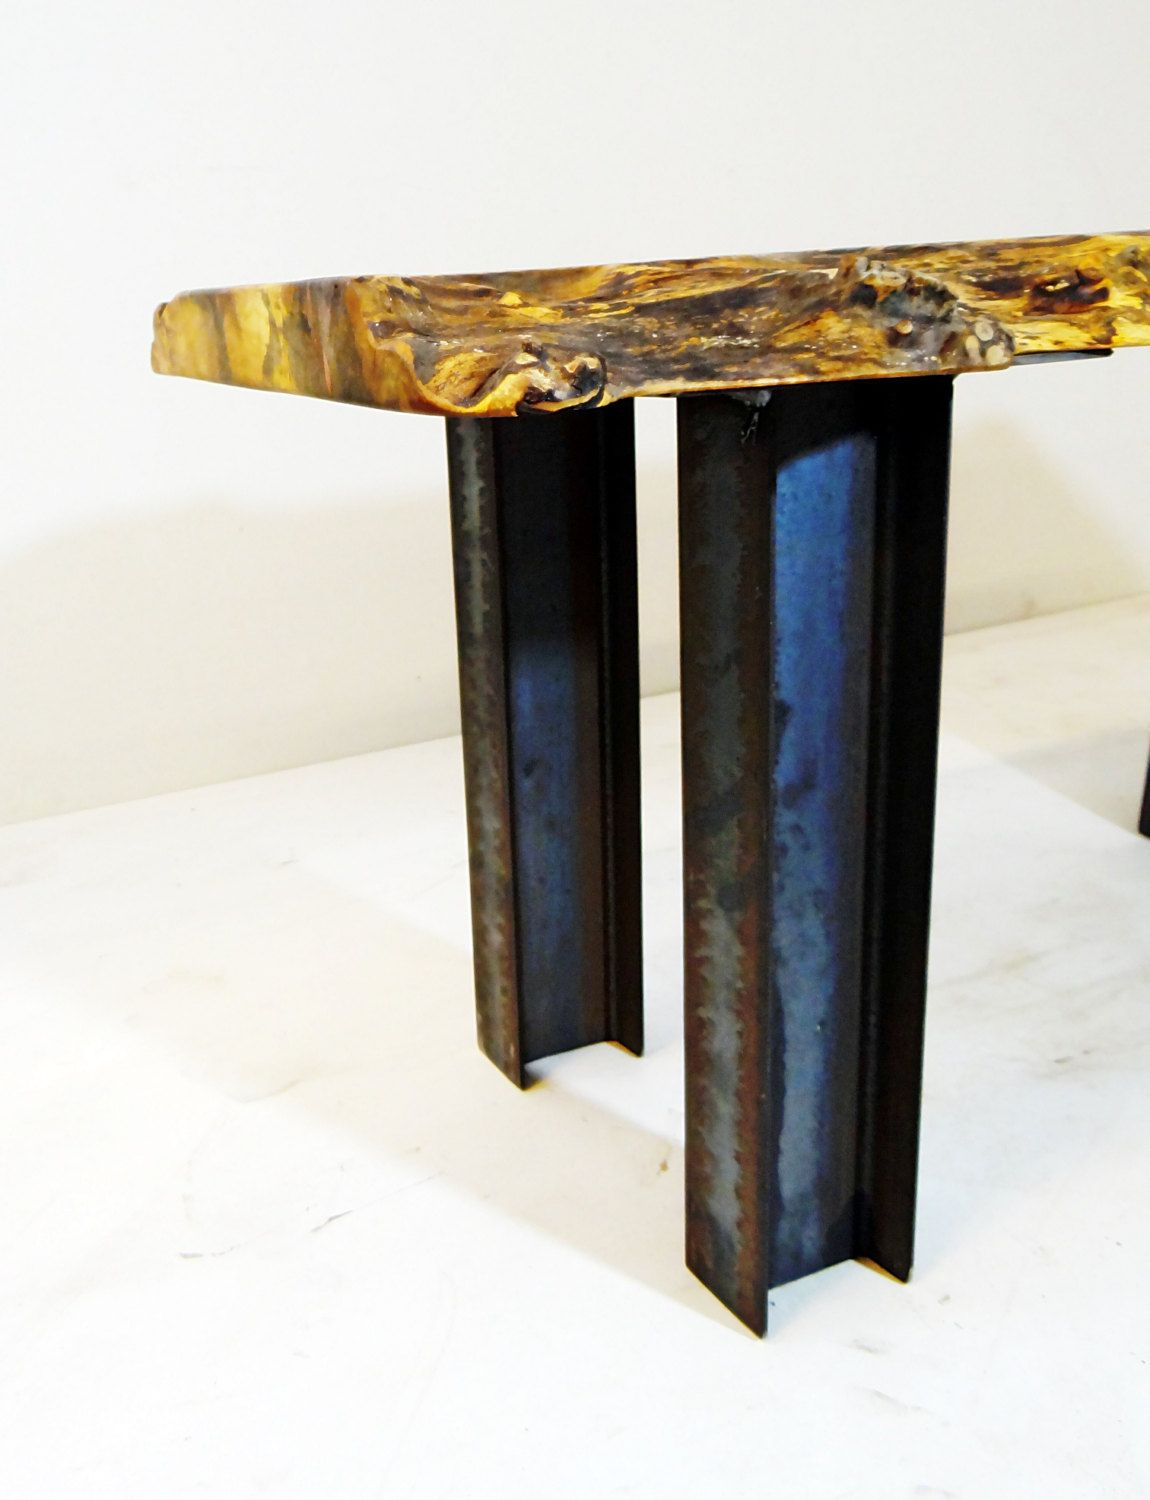 Buy Hand Crafted Industrial Modern Stee I Beam Pedestal Coffee Table Legs Made To Order From